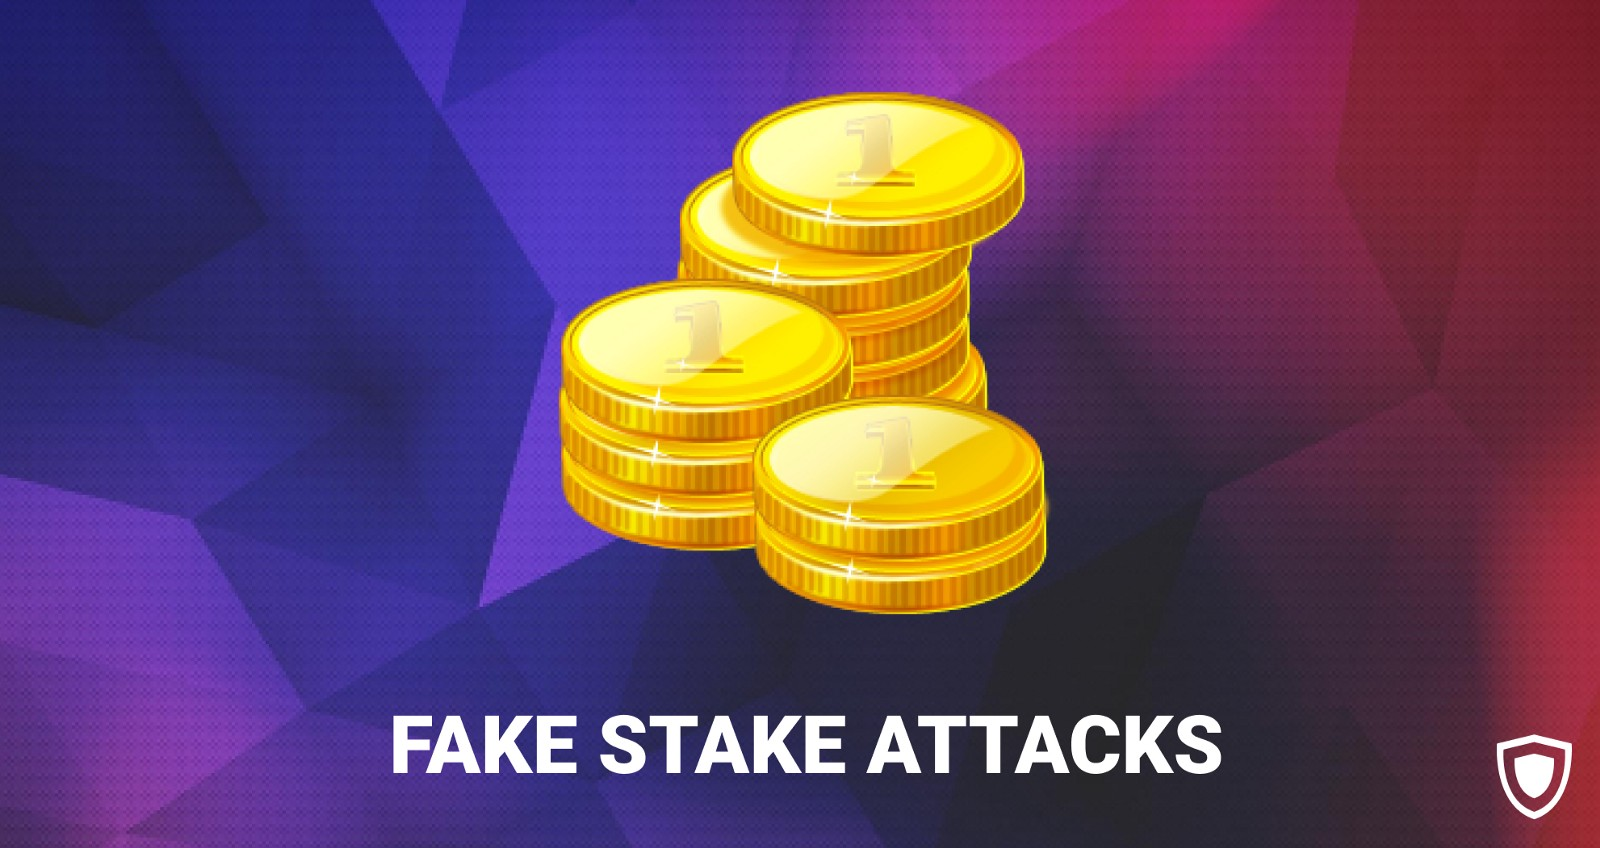 /should-we-be-afraid-of-fake-stake-attacks-3f7ce7217766 feature image